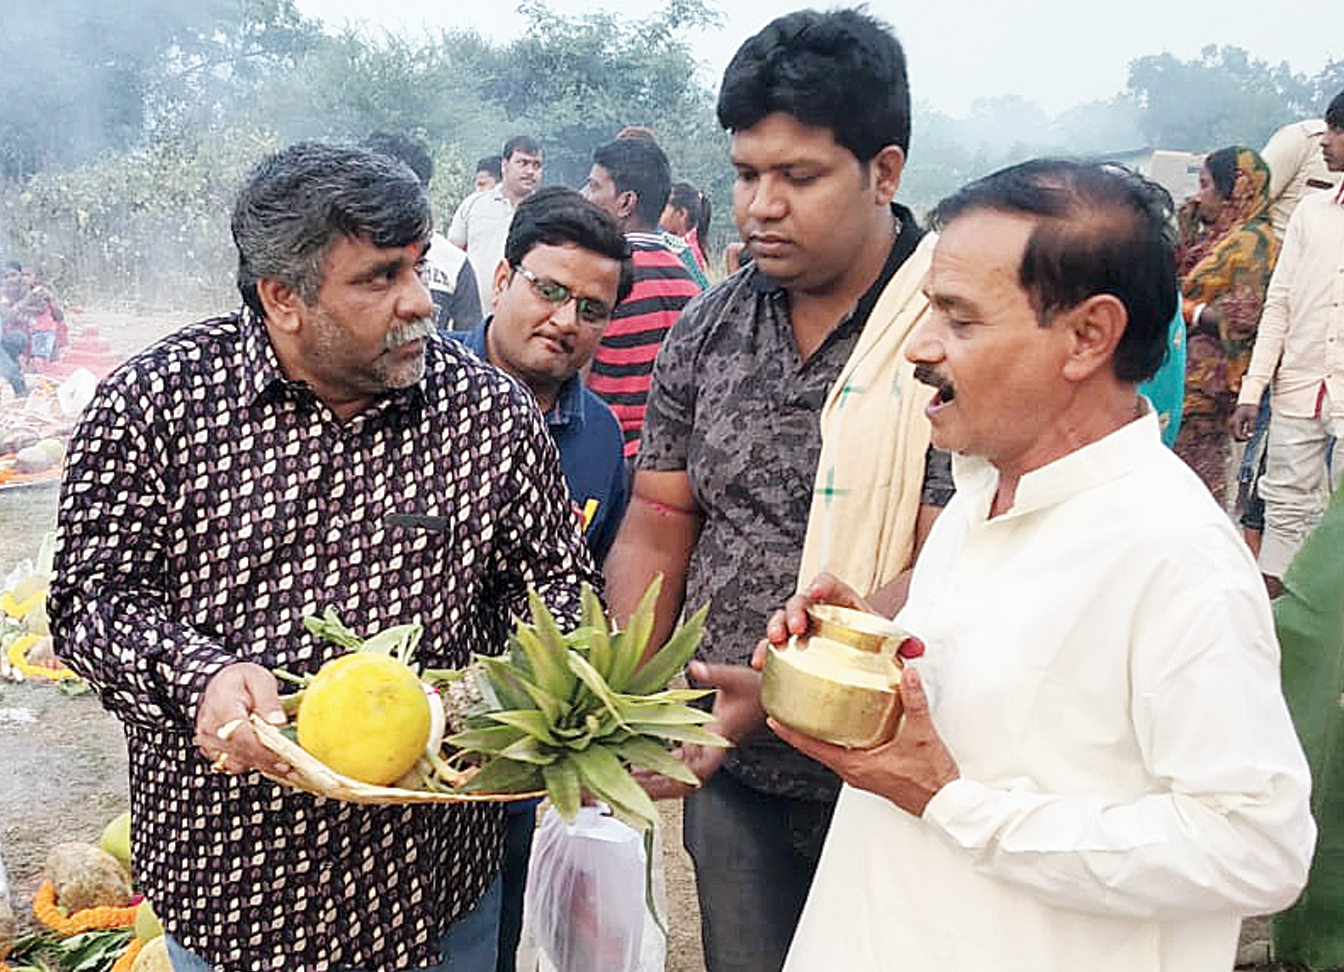 Asansol mayor Jitendra Kumar Tiwari (left) participates in Chhath Puja on Tuesday.